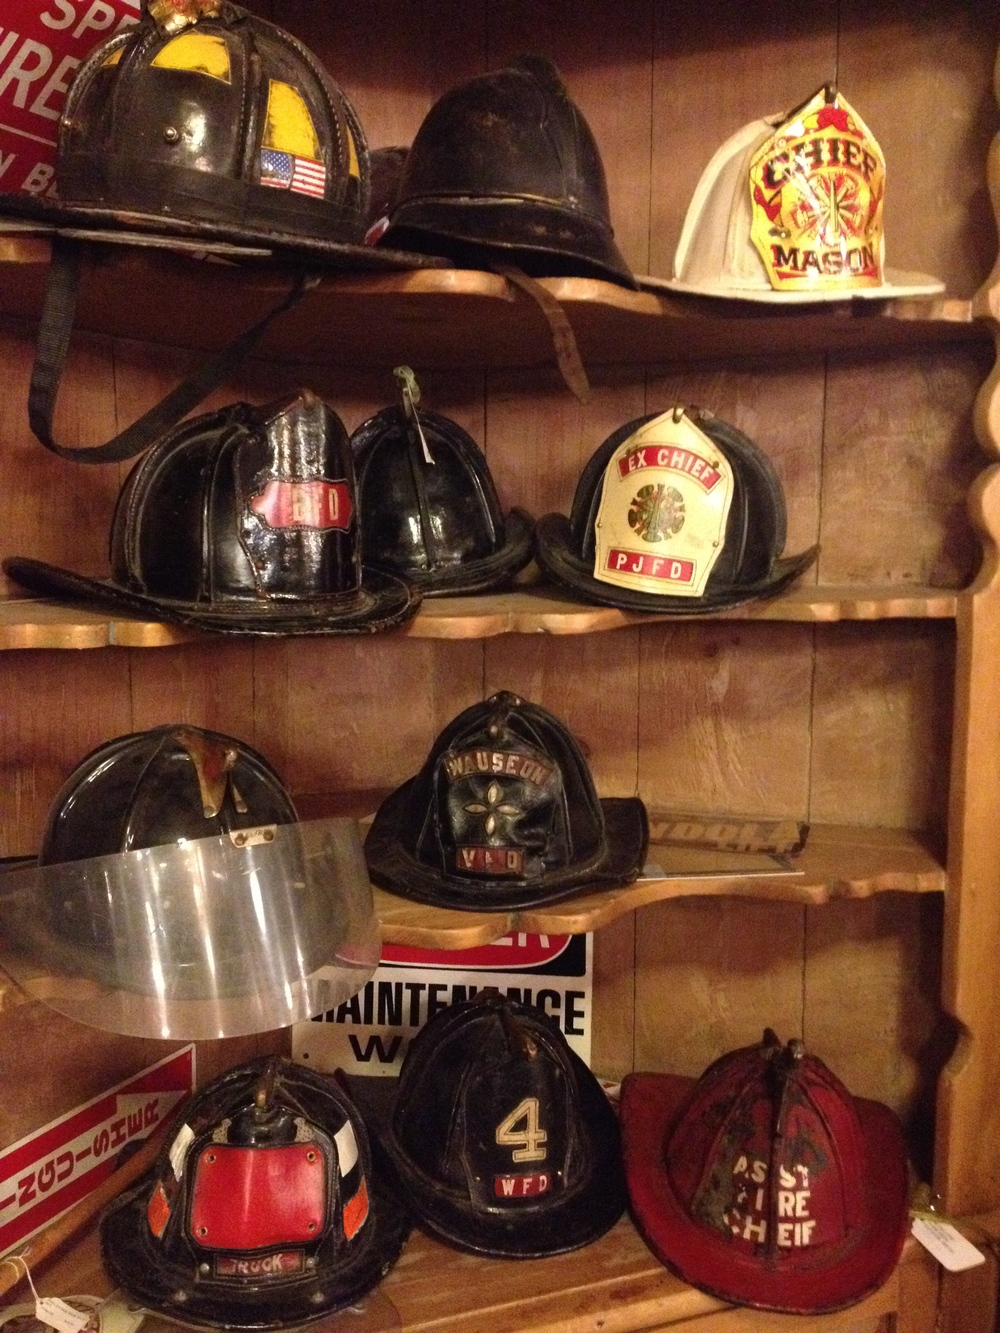 A collection of Fireman Helmets waiting for the right collector.